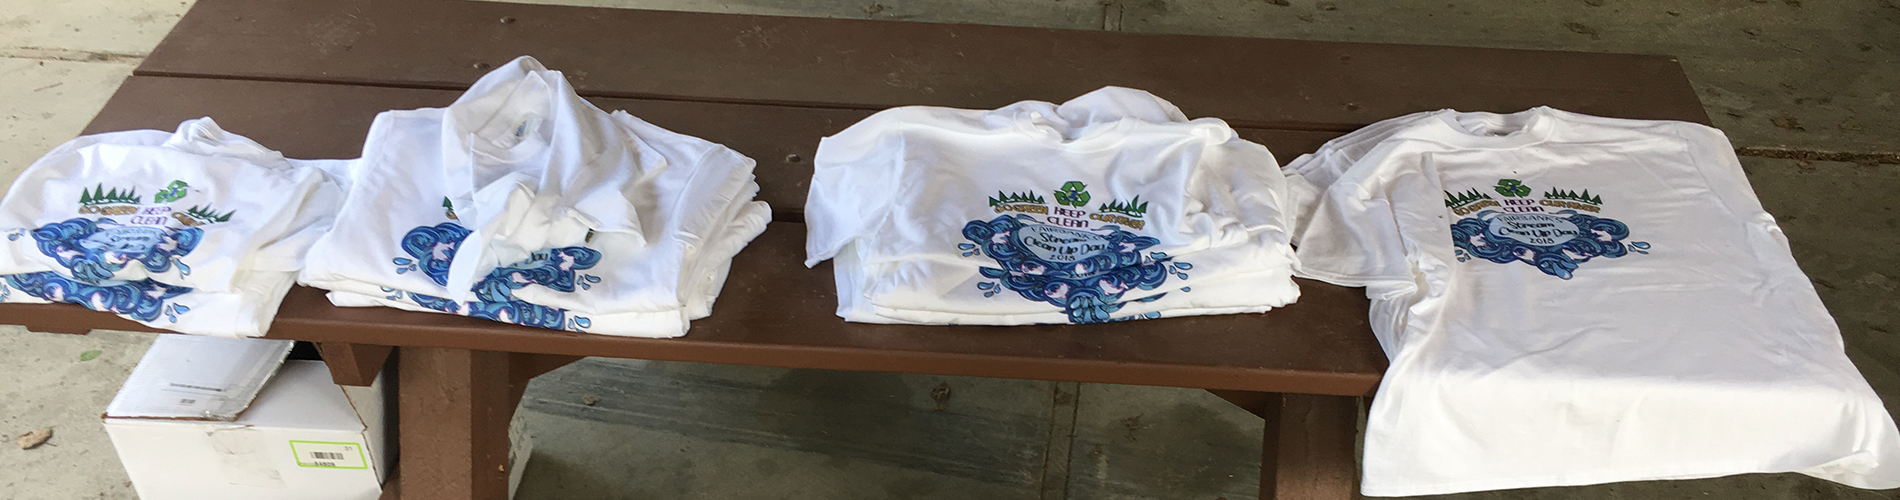 Tshirts from Cleanup Chena day